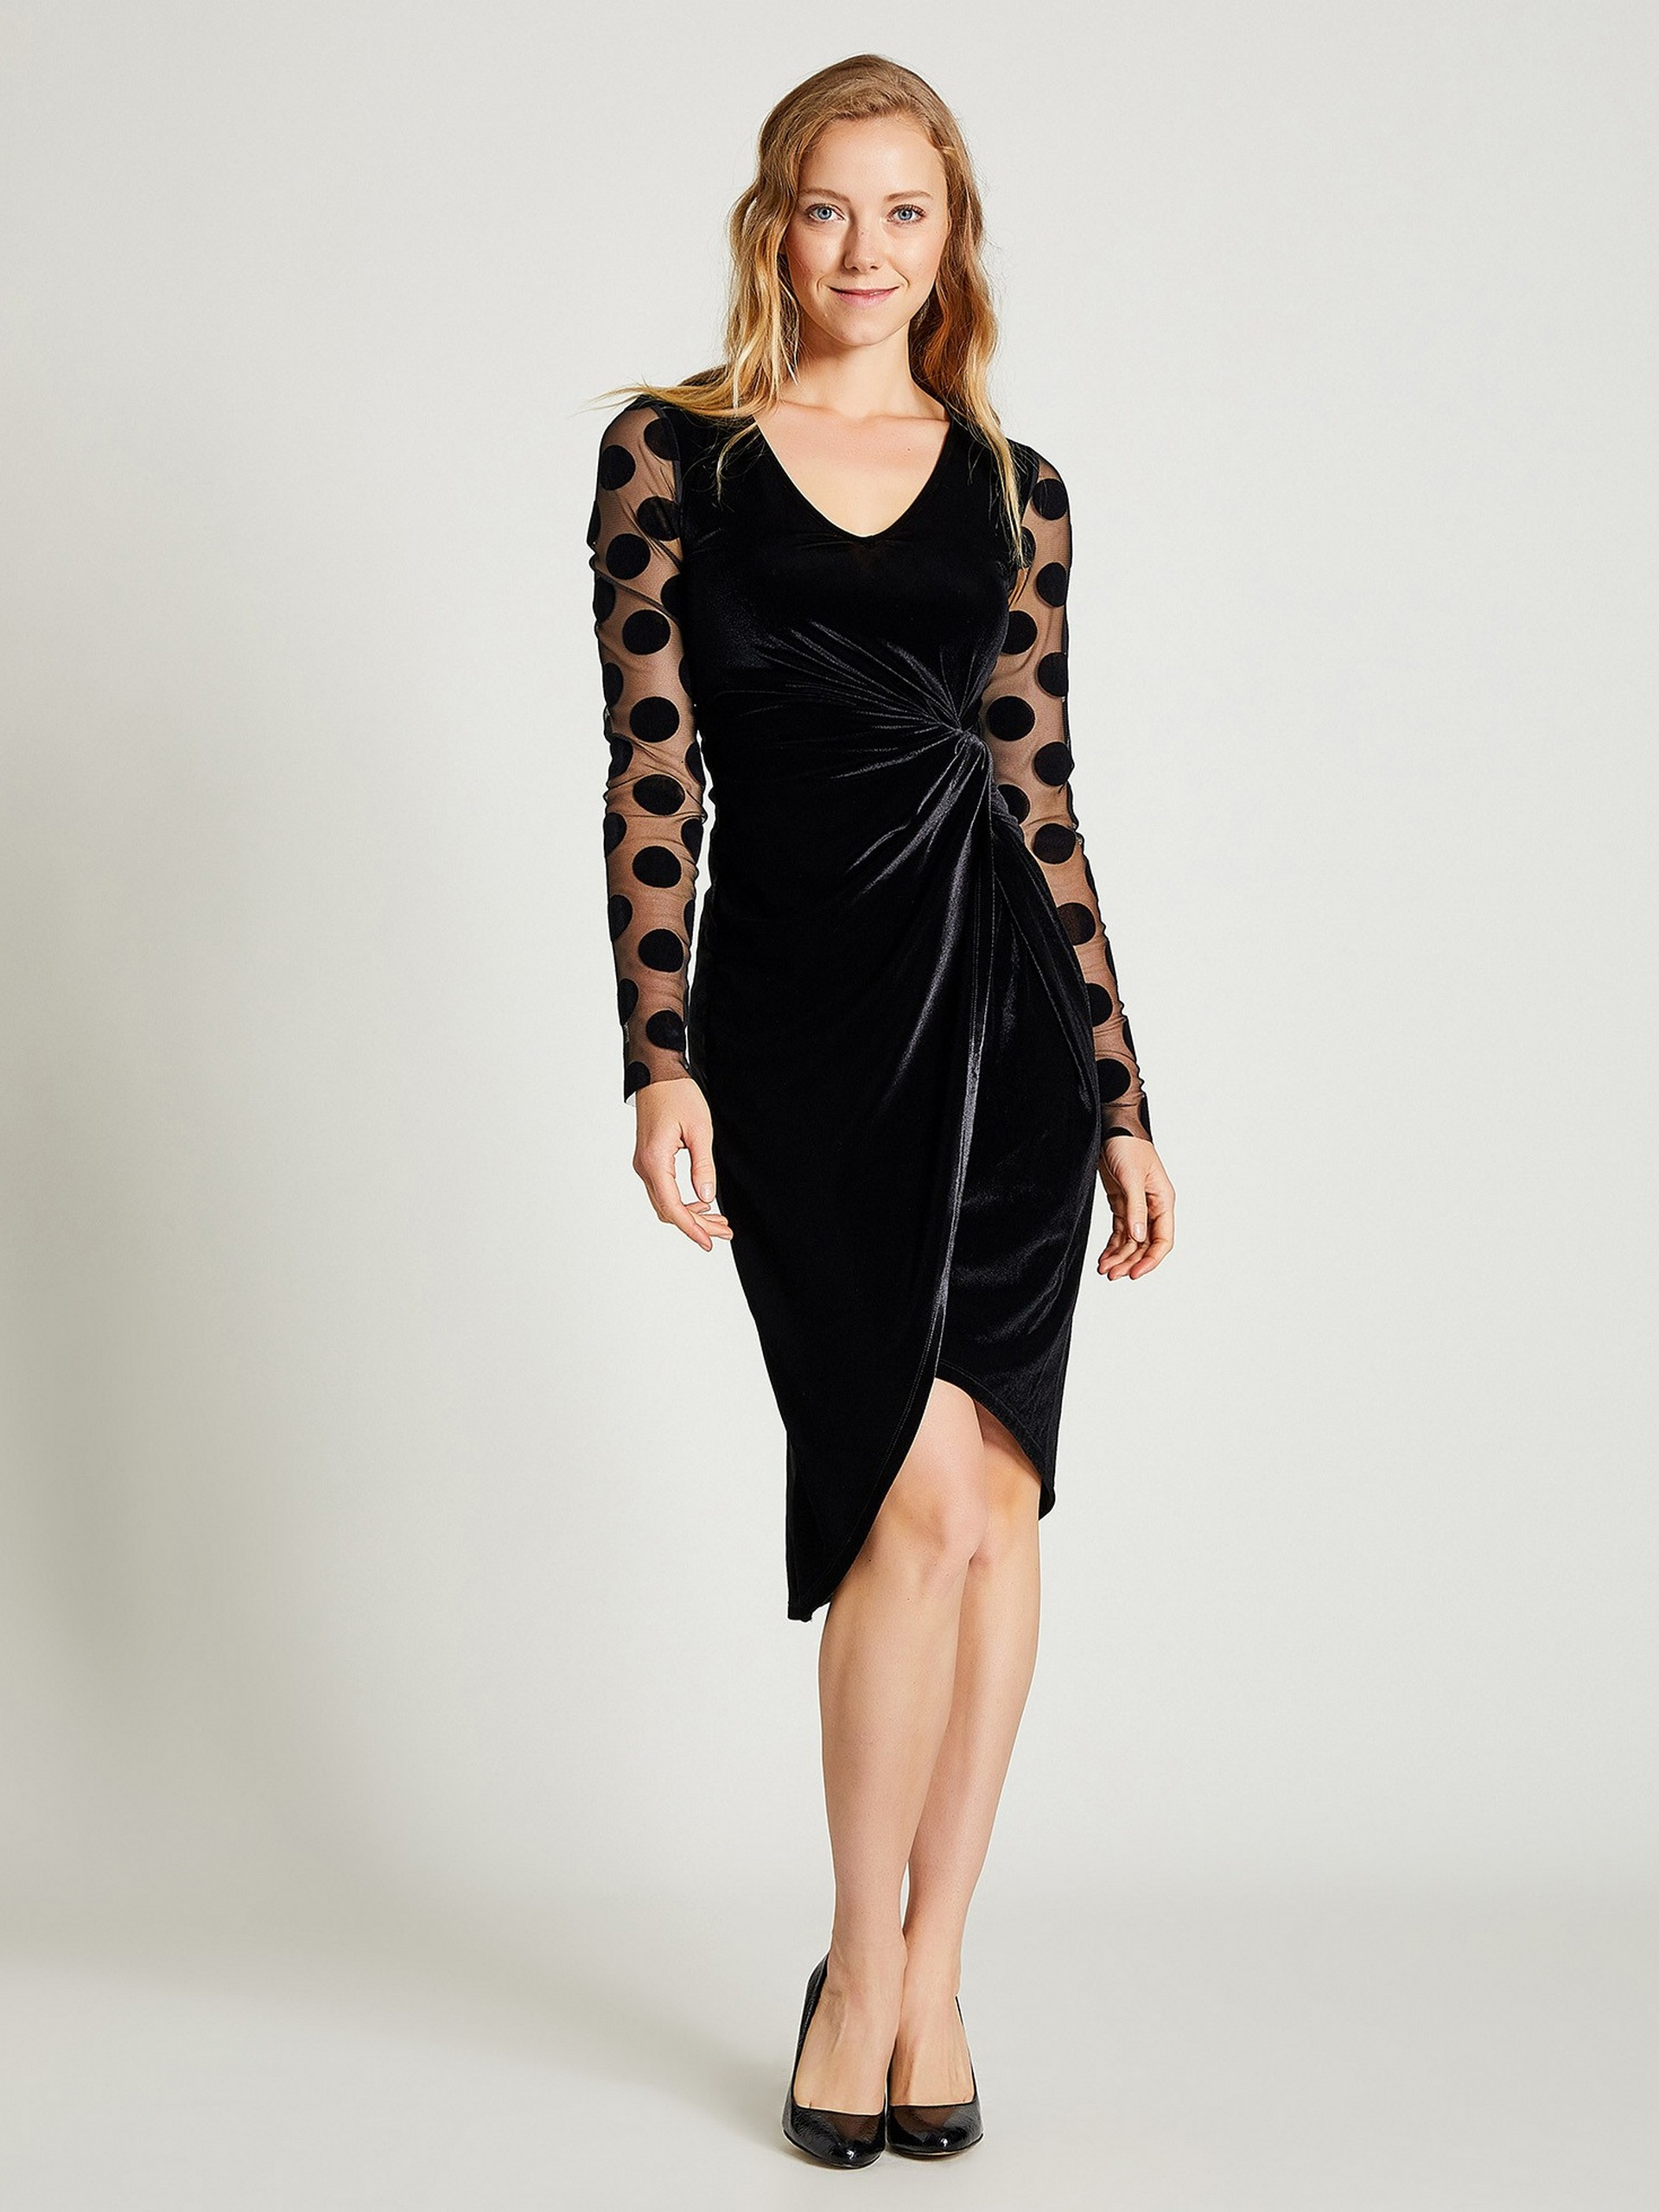 Polka Dot Sleeved Velvet Dress